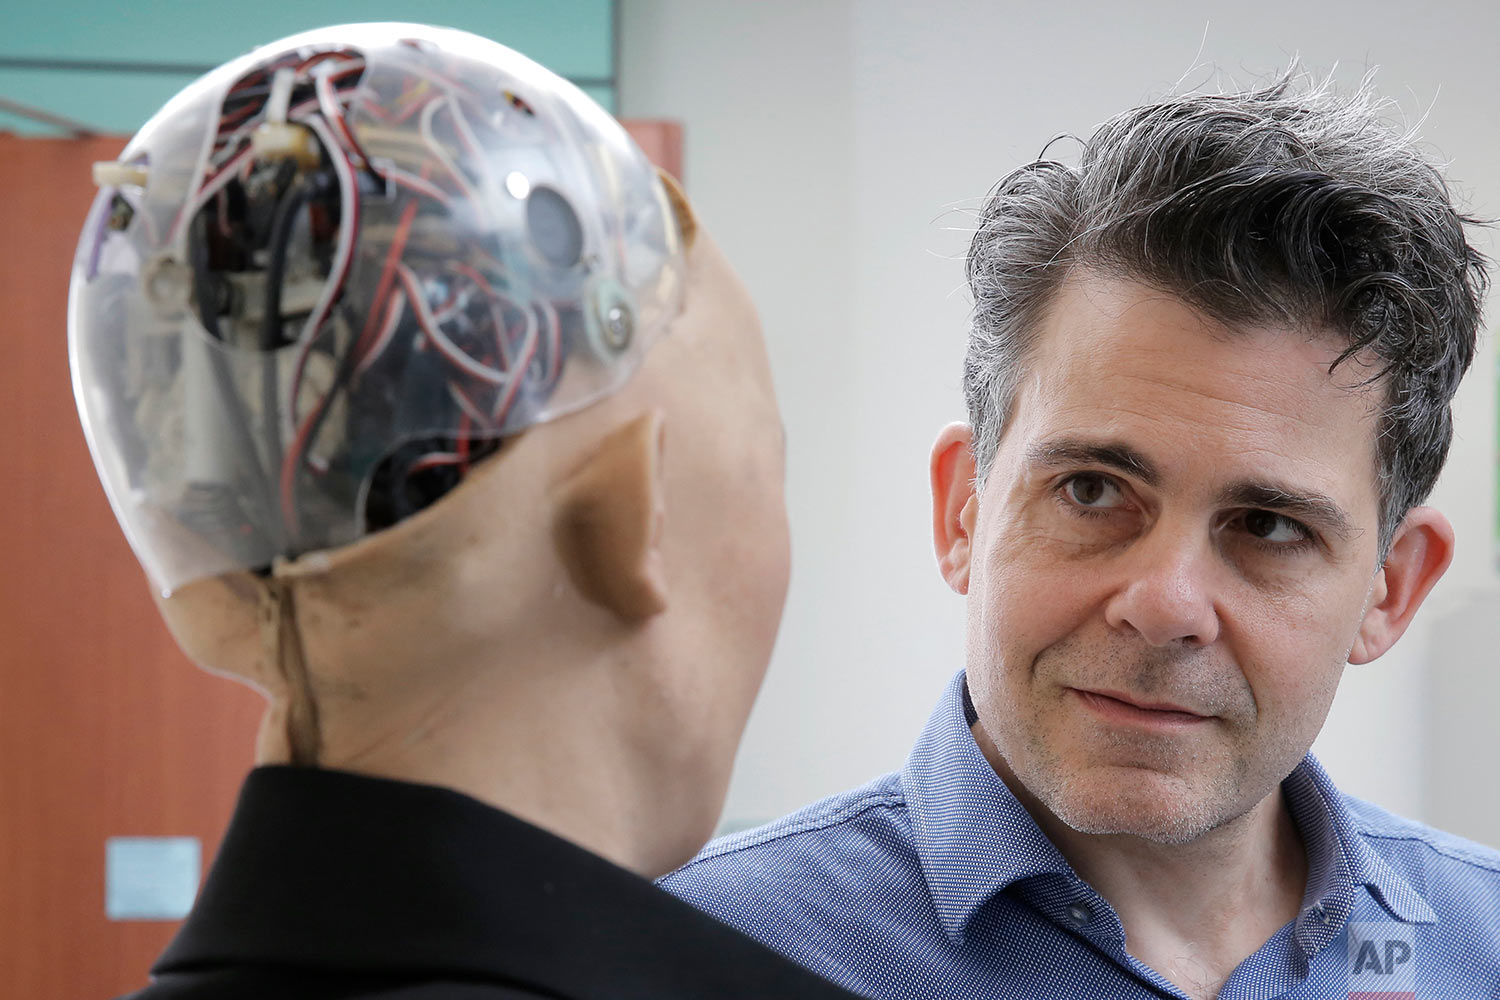 In this Sept. 28, 2017 photo, the founder of Hanson Robotics, David Hanson, right, chats with his company's flagship robot Sophia, a lifelike robot powered by artificial intelligence (AI) in Hong Kong. (AP Photo/Kin Cheung) |  See these photos on AP Images